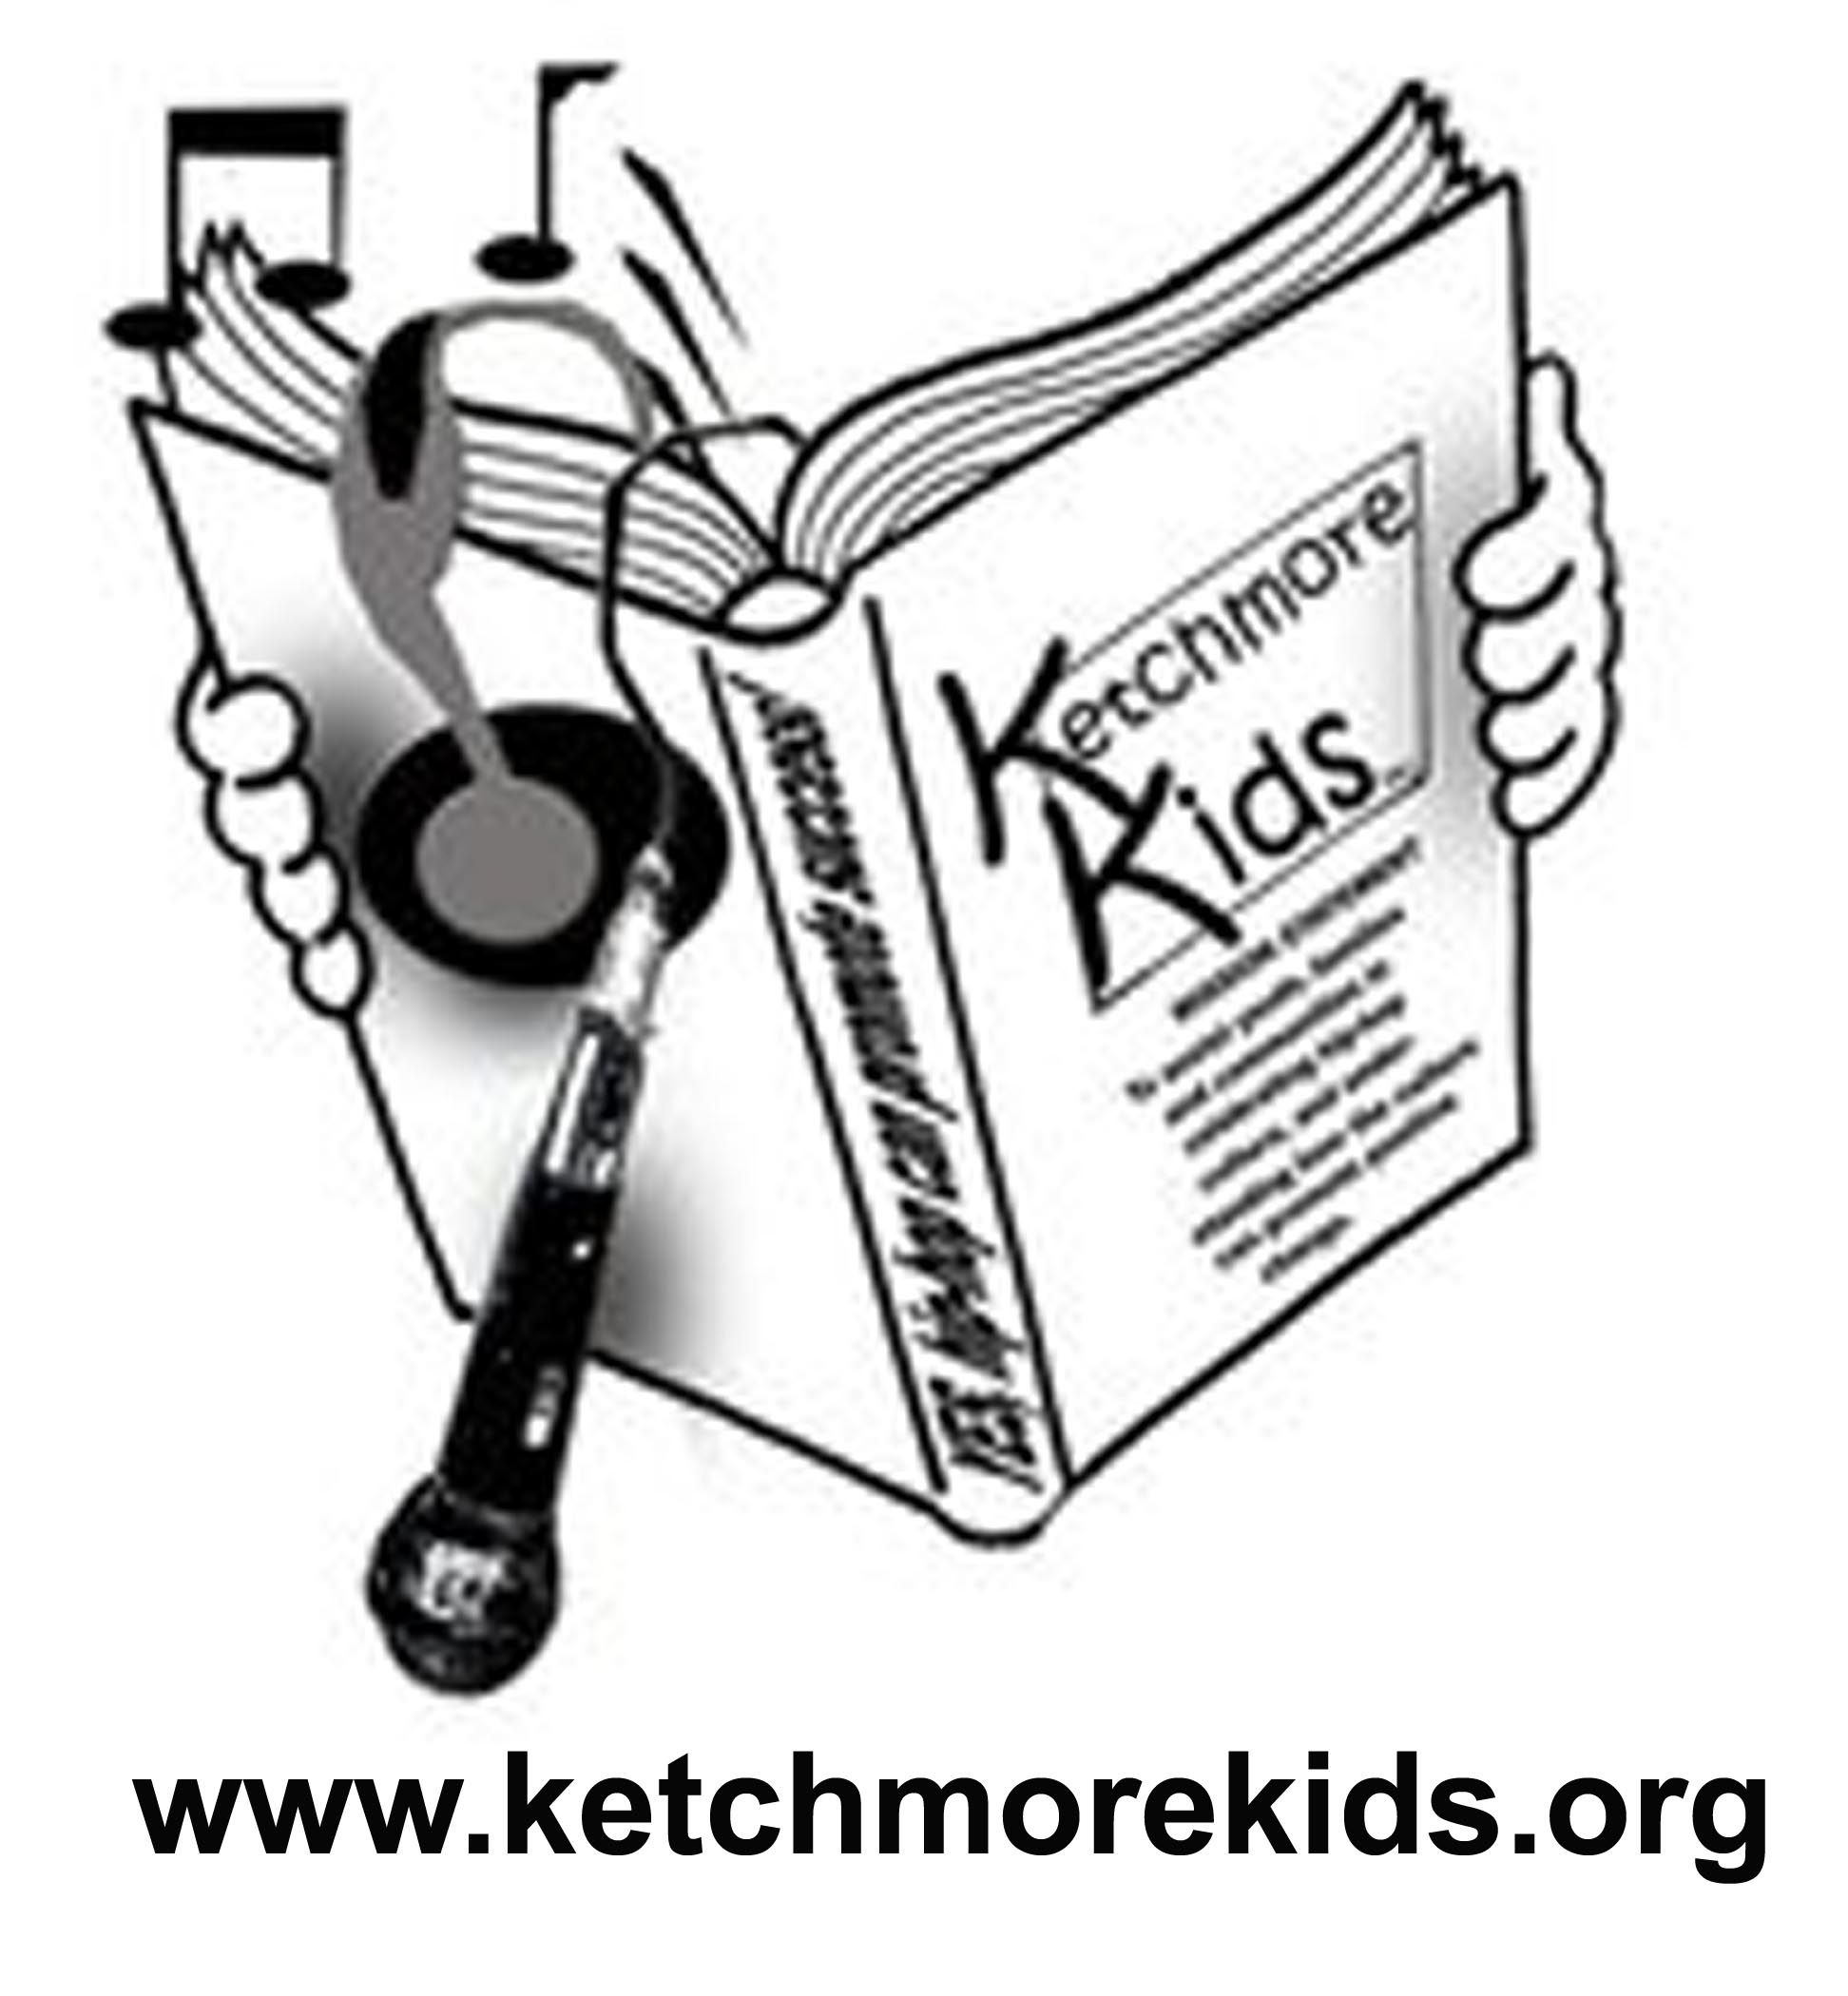 Visit Ketchmore Kids today to see a positive insight on Hip-Hop and our youth.